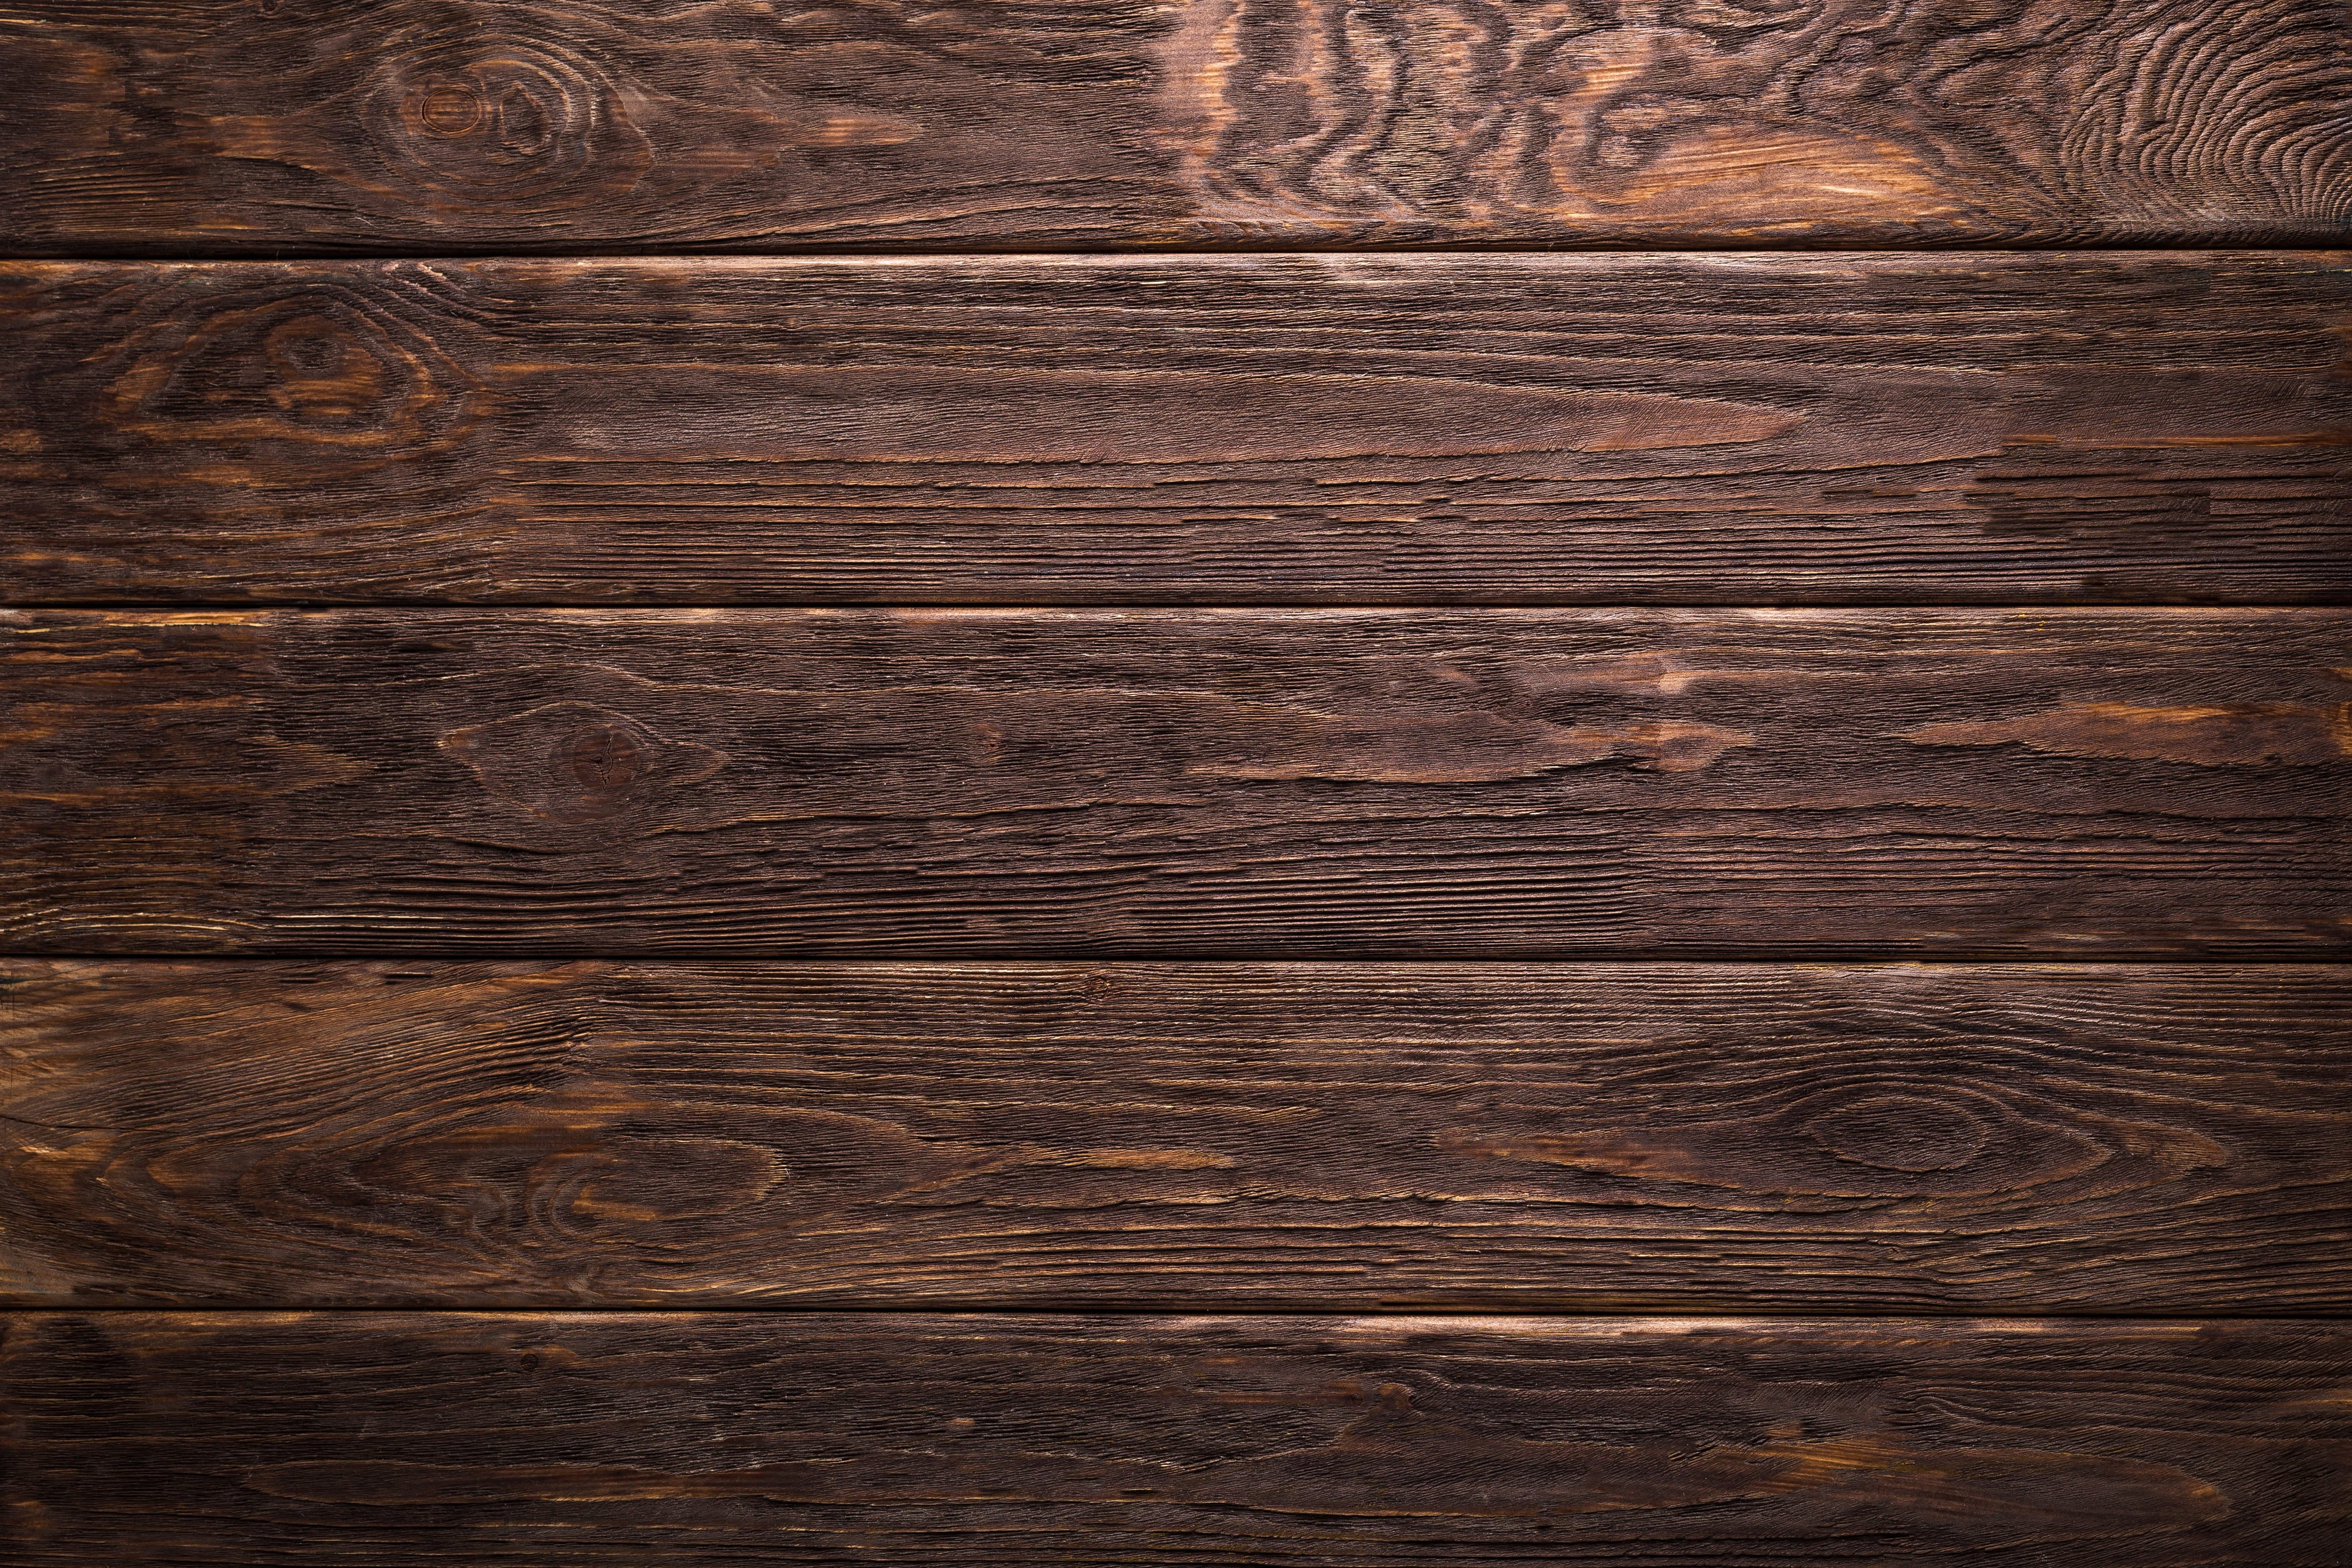 Brown wooden surface HD wallpaper | Wallpaper Flare